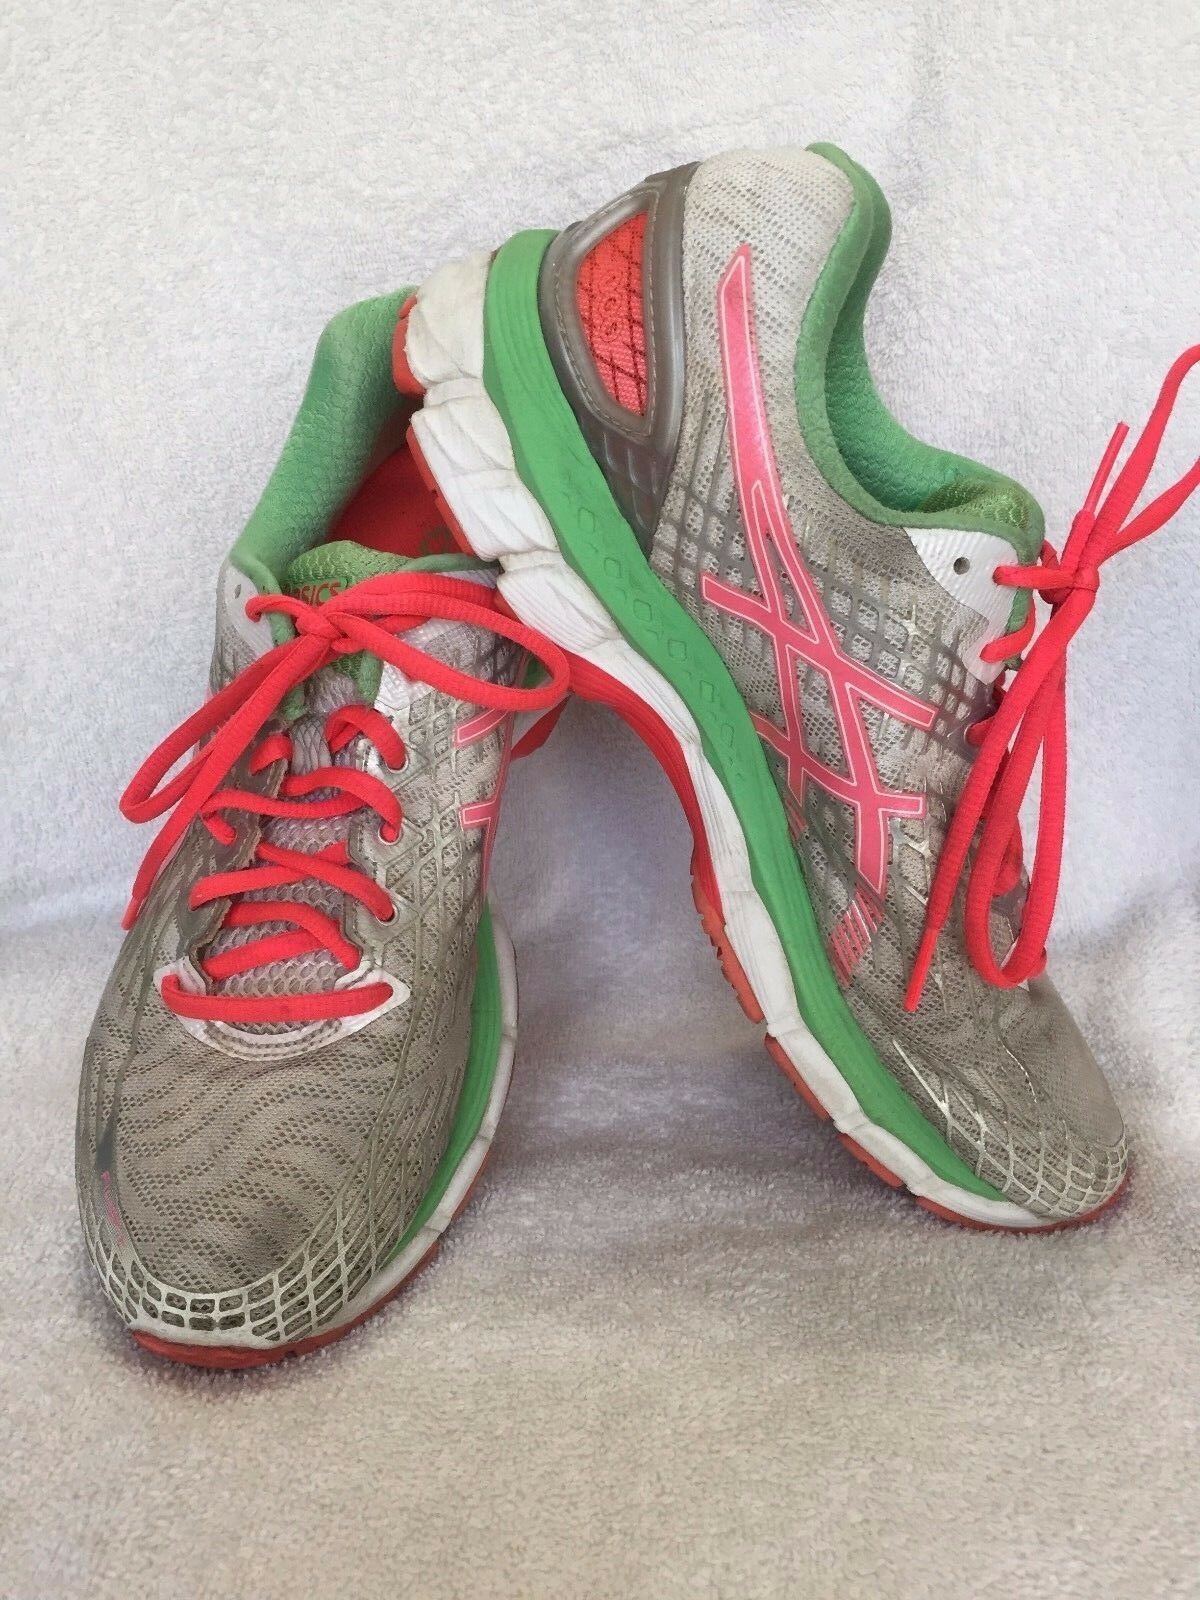 Asics Gel Nimbus T557N Pink White Green Running Womens 9.5 Shoes Comfortable and good-looking